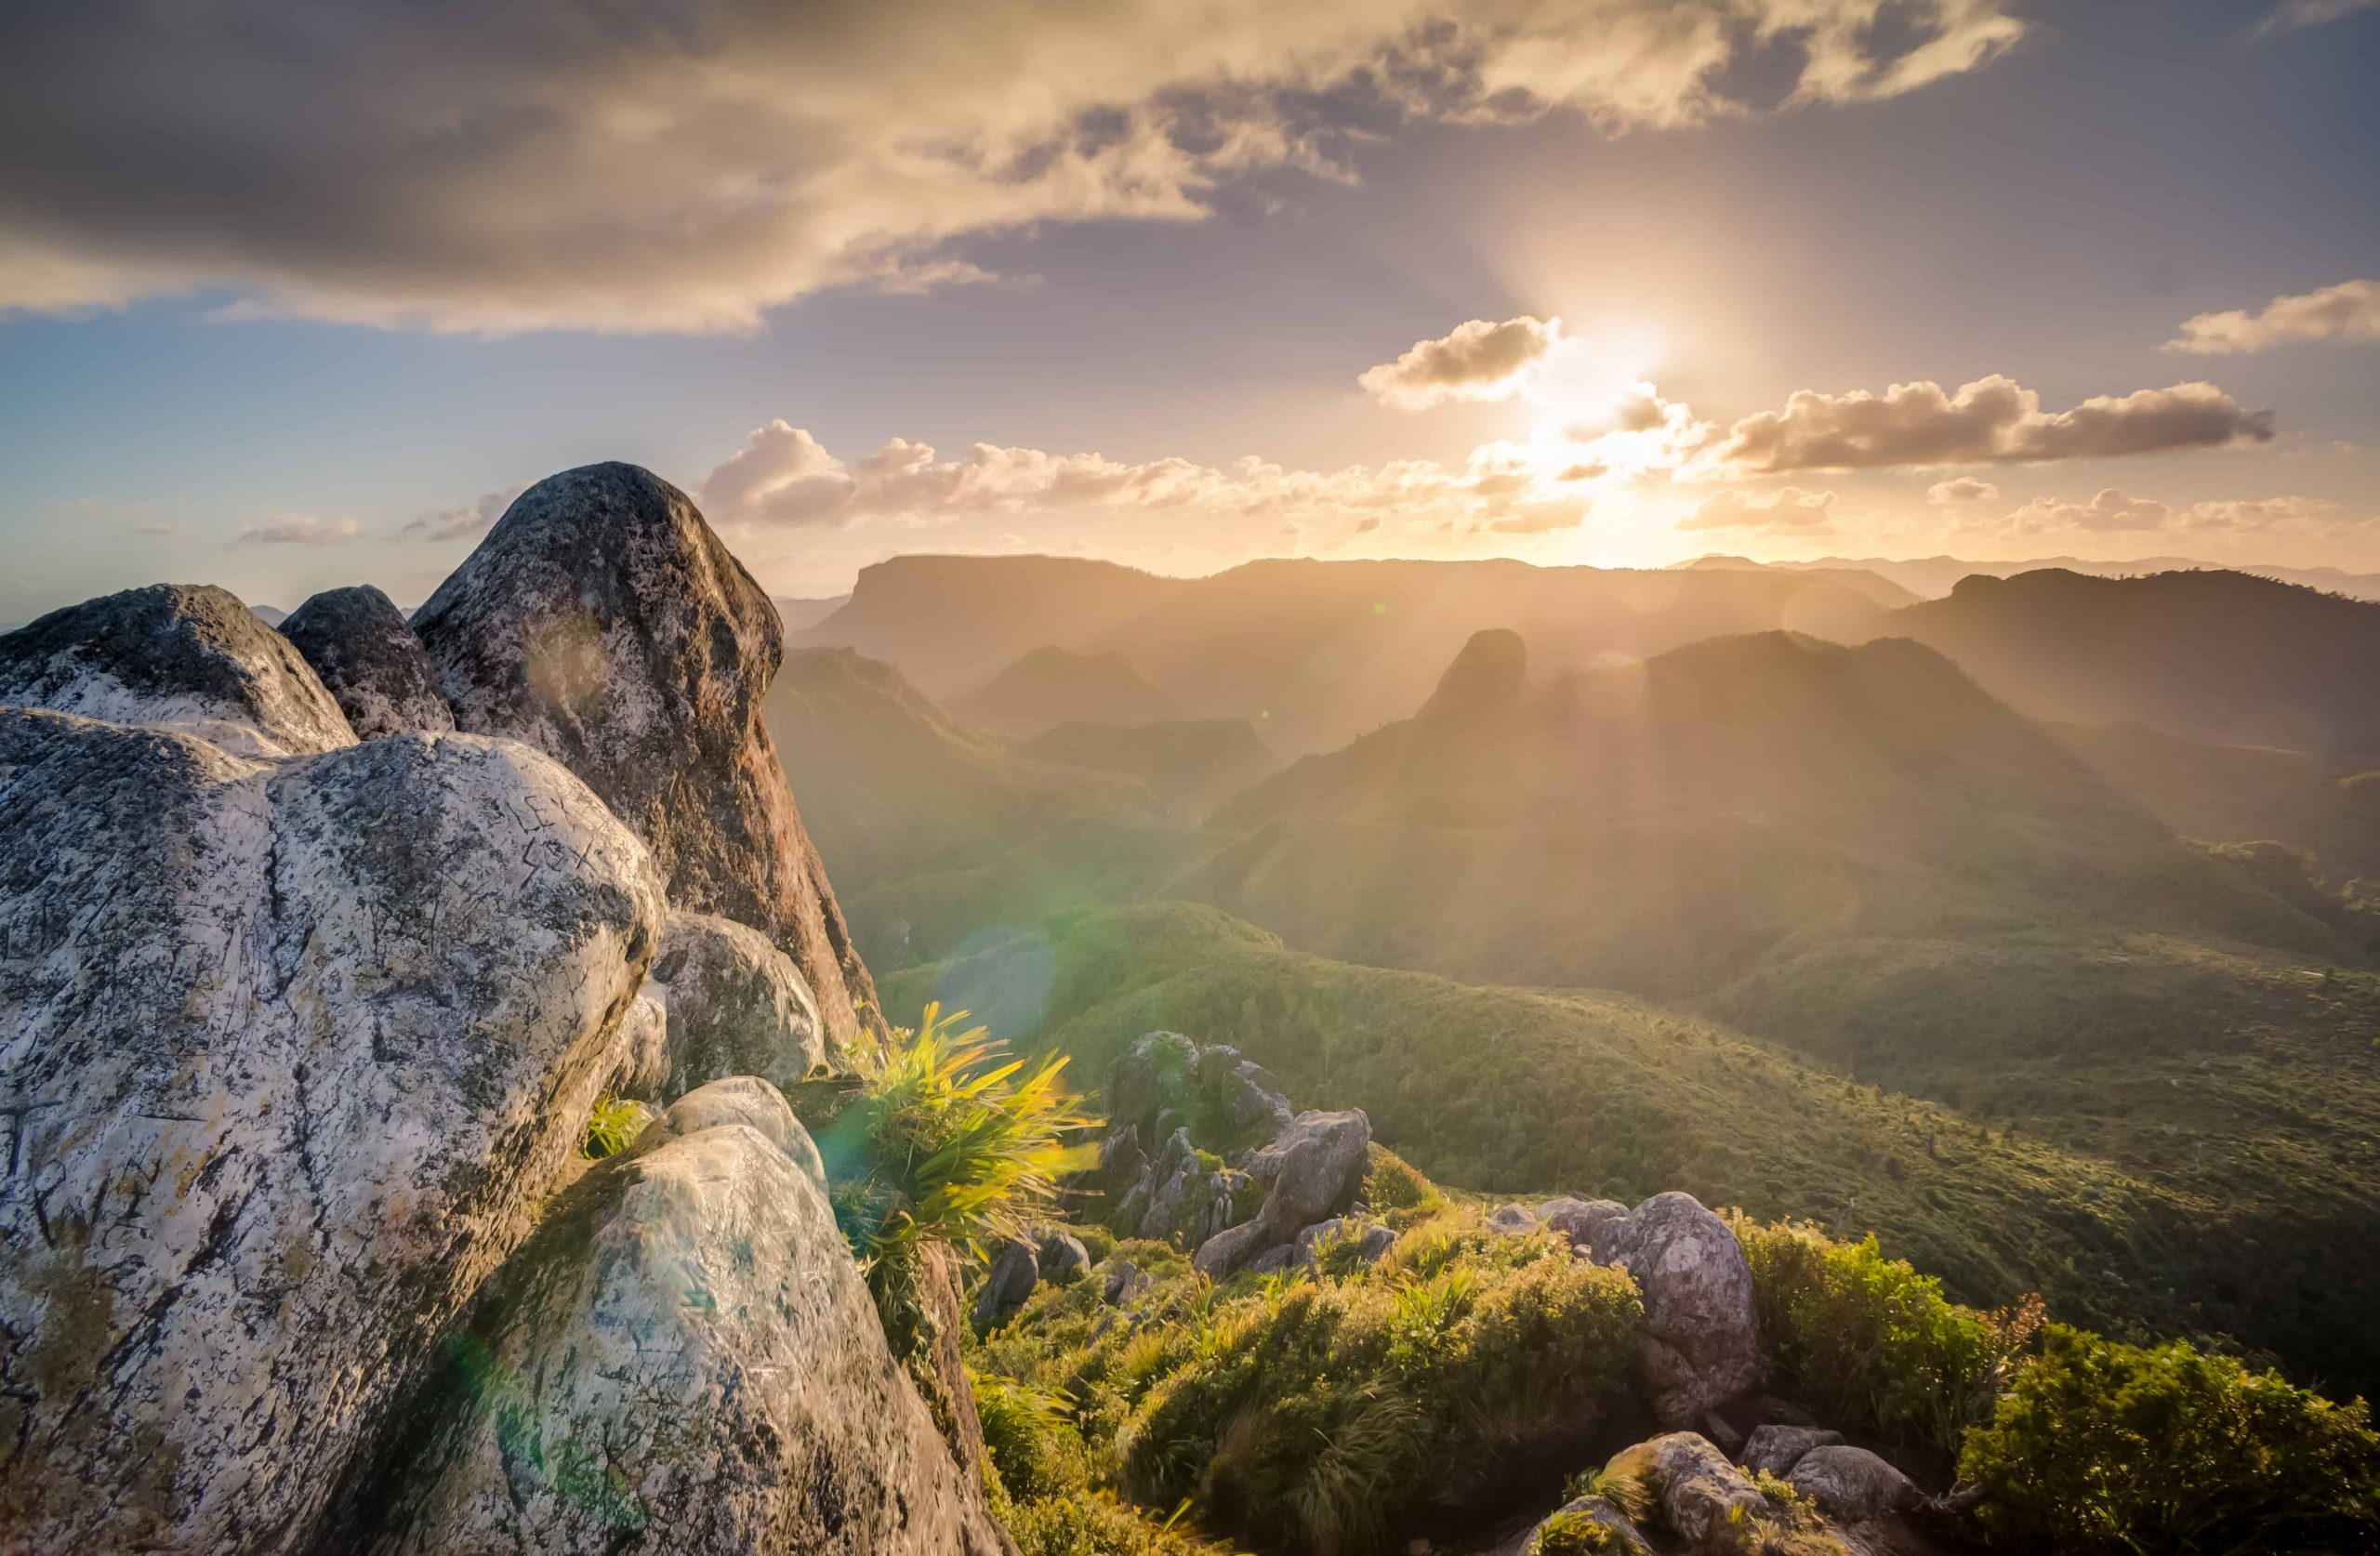 Monday Morning Hypnosis for Self-Esteem - A view of a rocky mountain with trees in the background - Anointing of the Sick in the Catholic Church